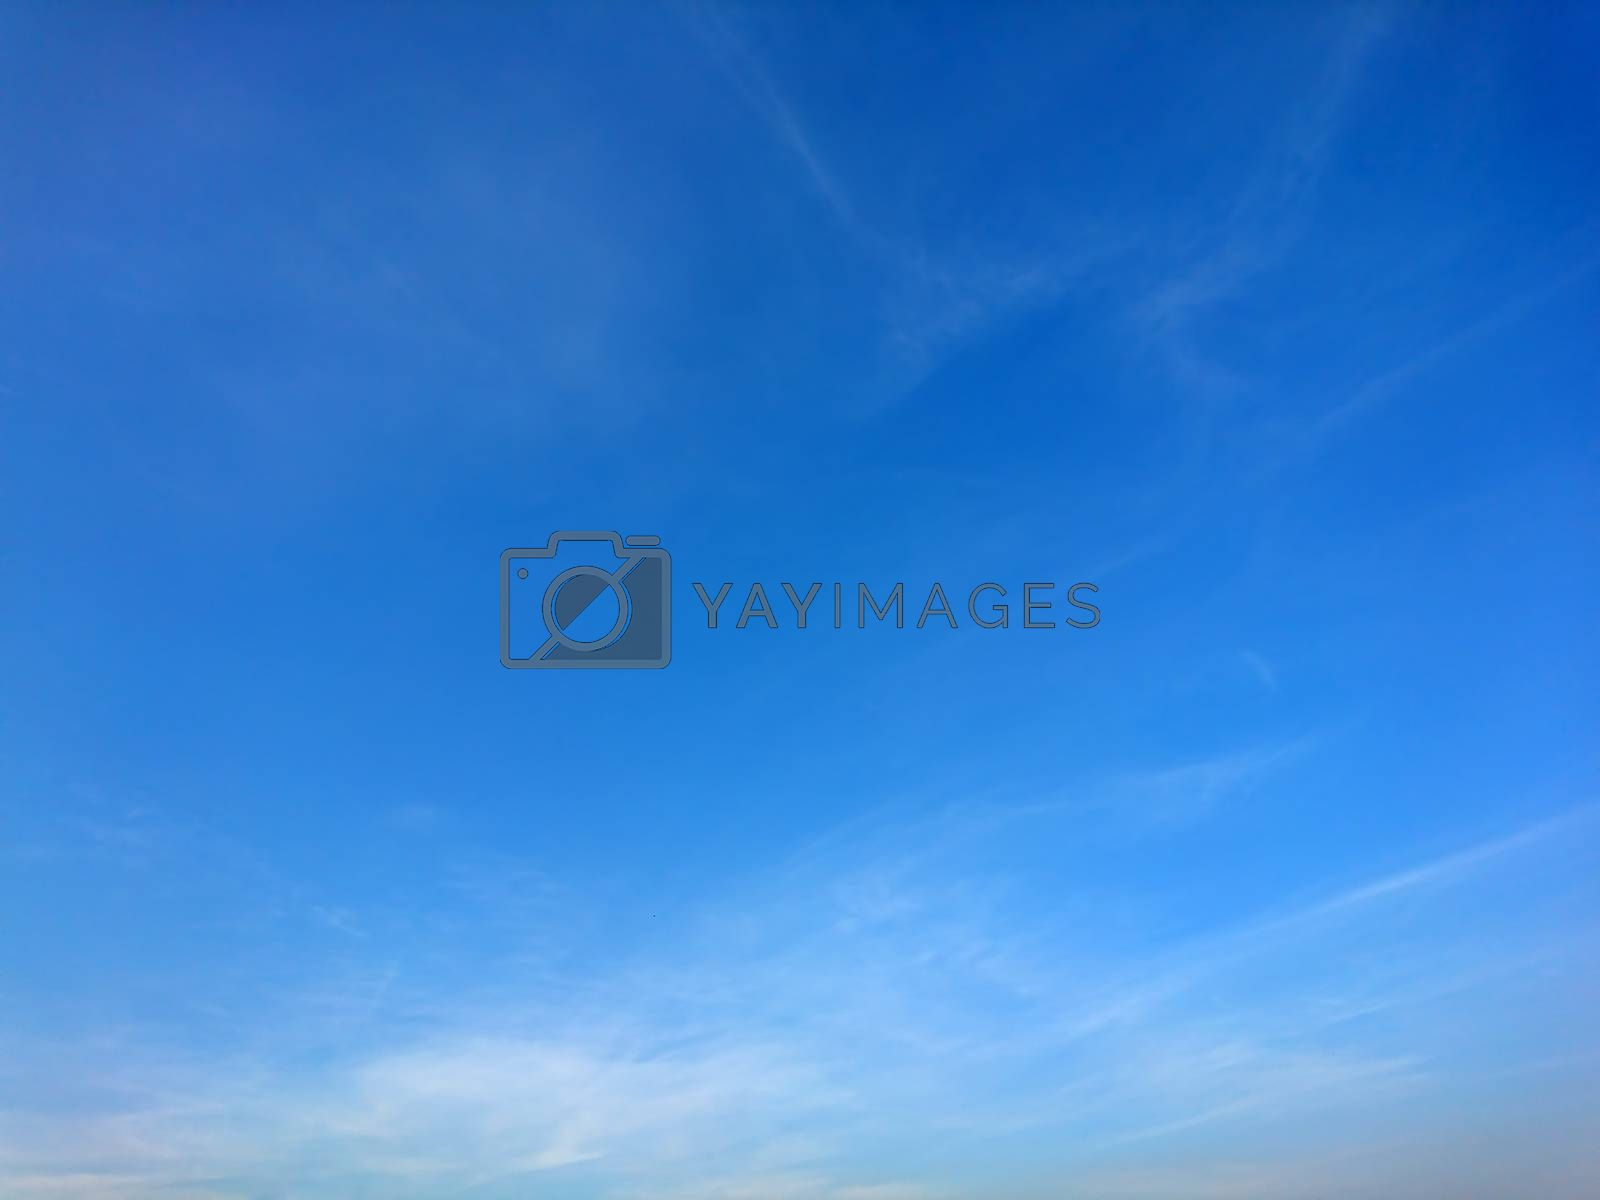 Background of blue sky with white cloud